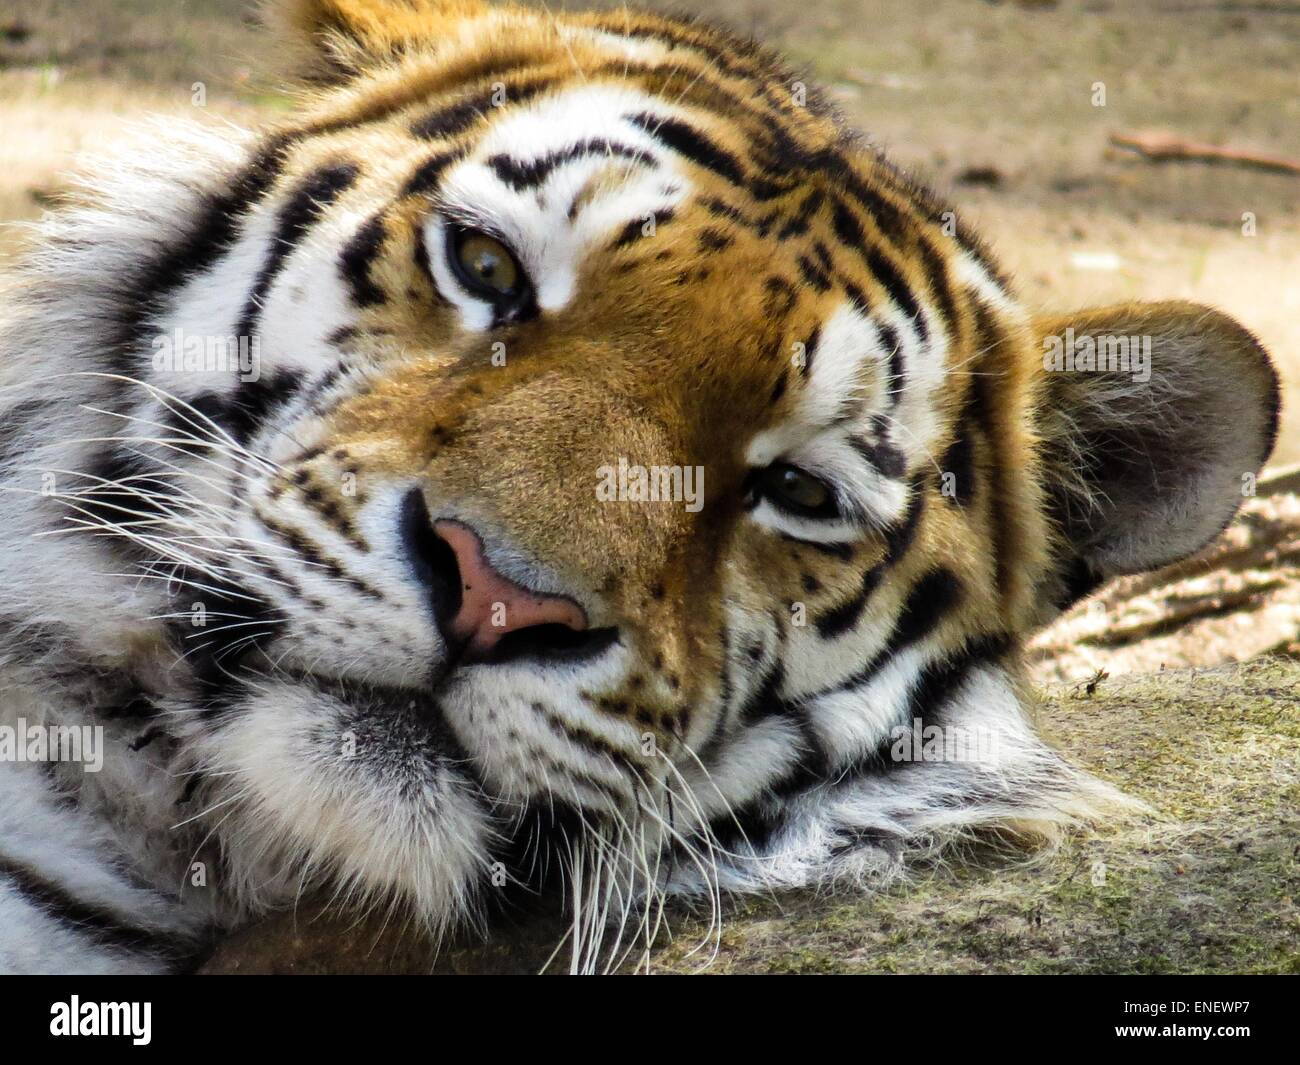 close up of a tigers face stock photo 82076799 alamy